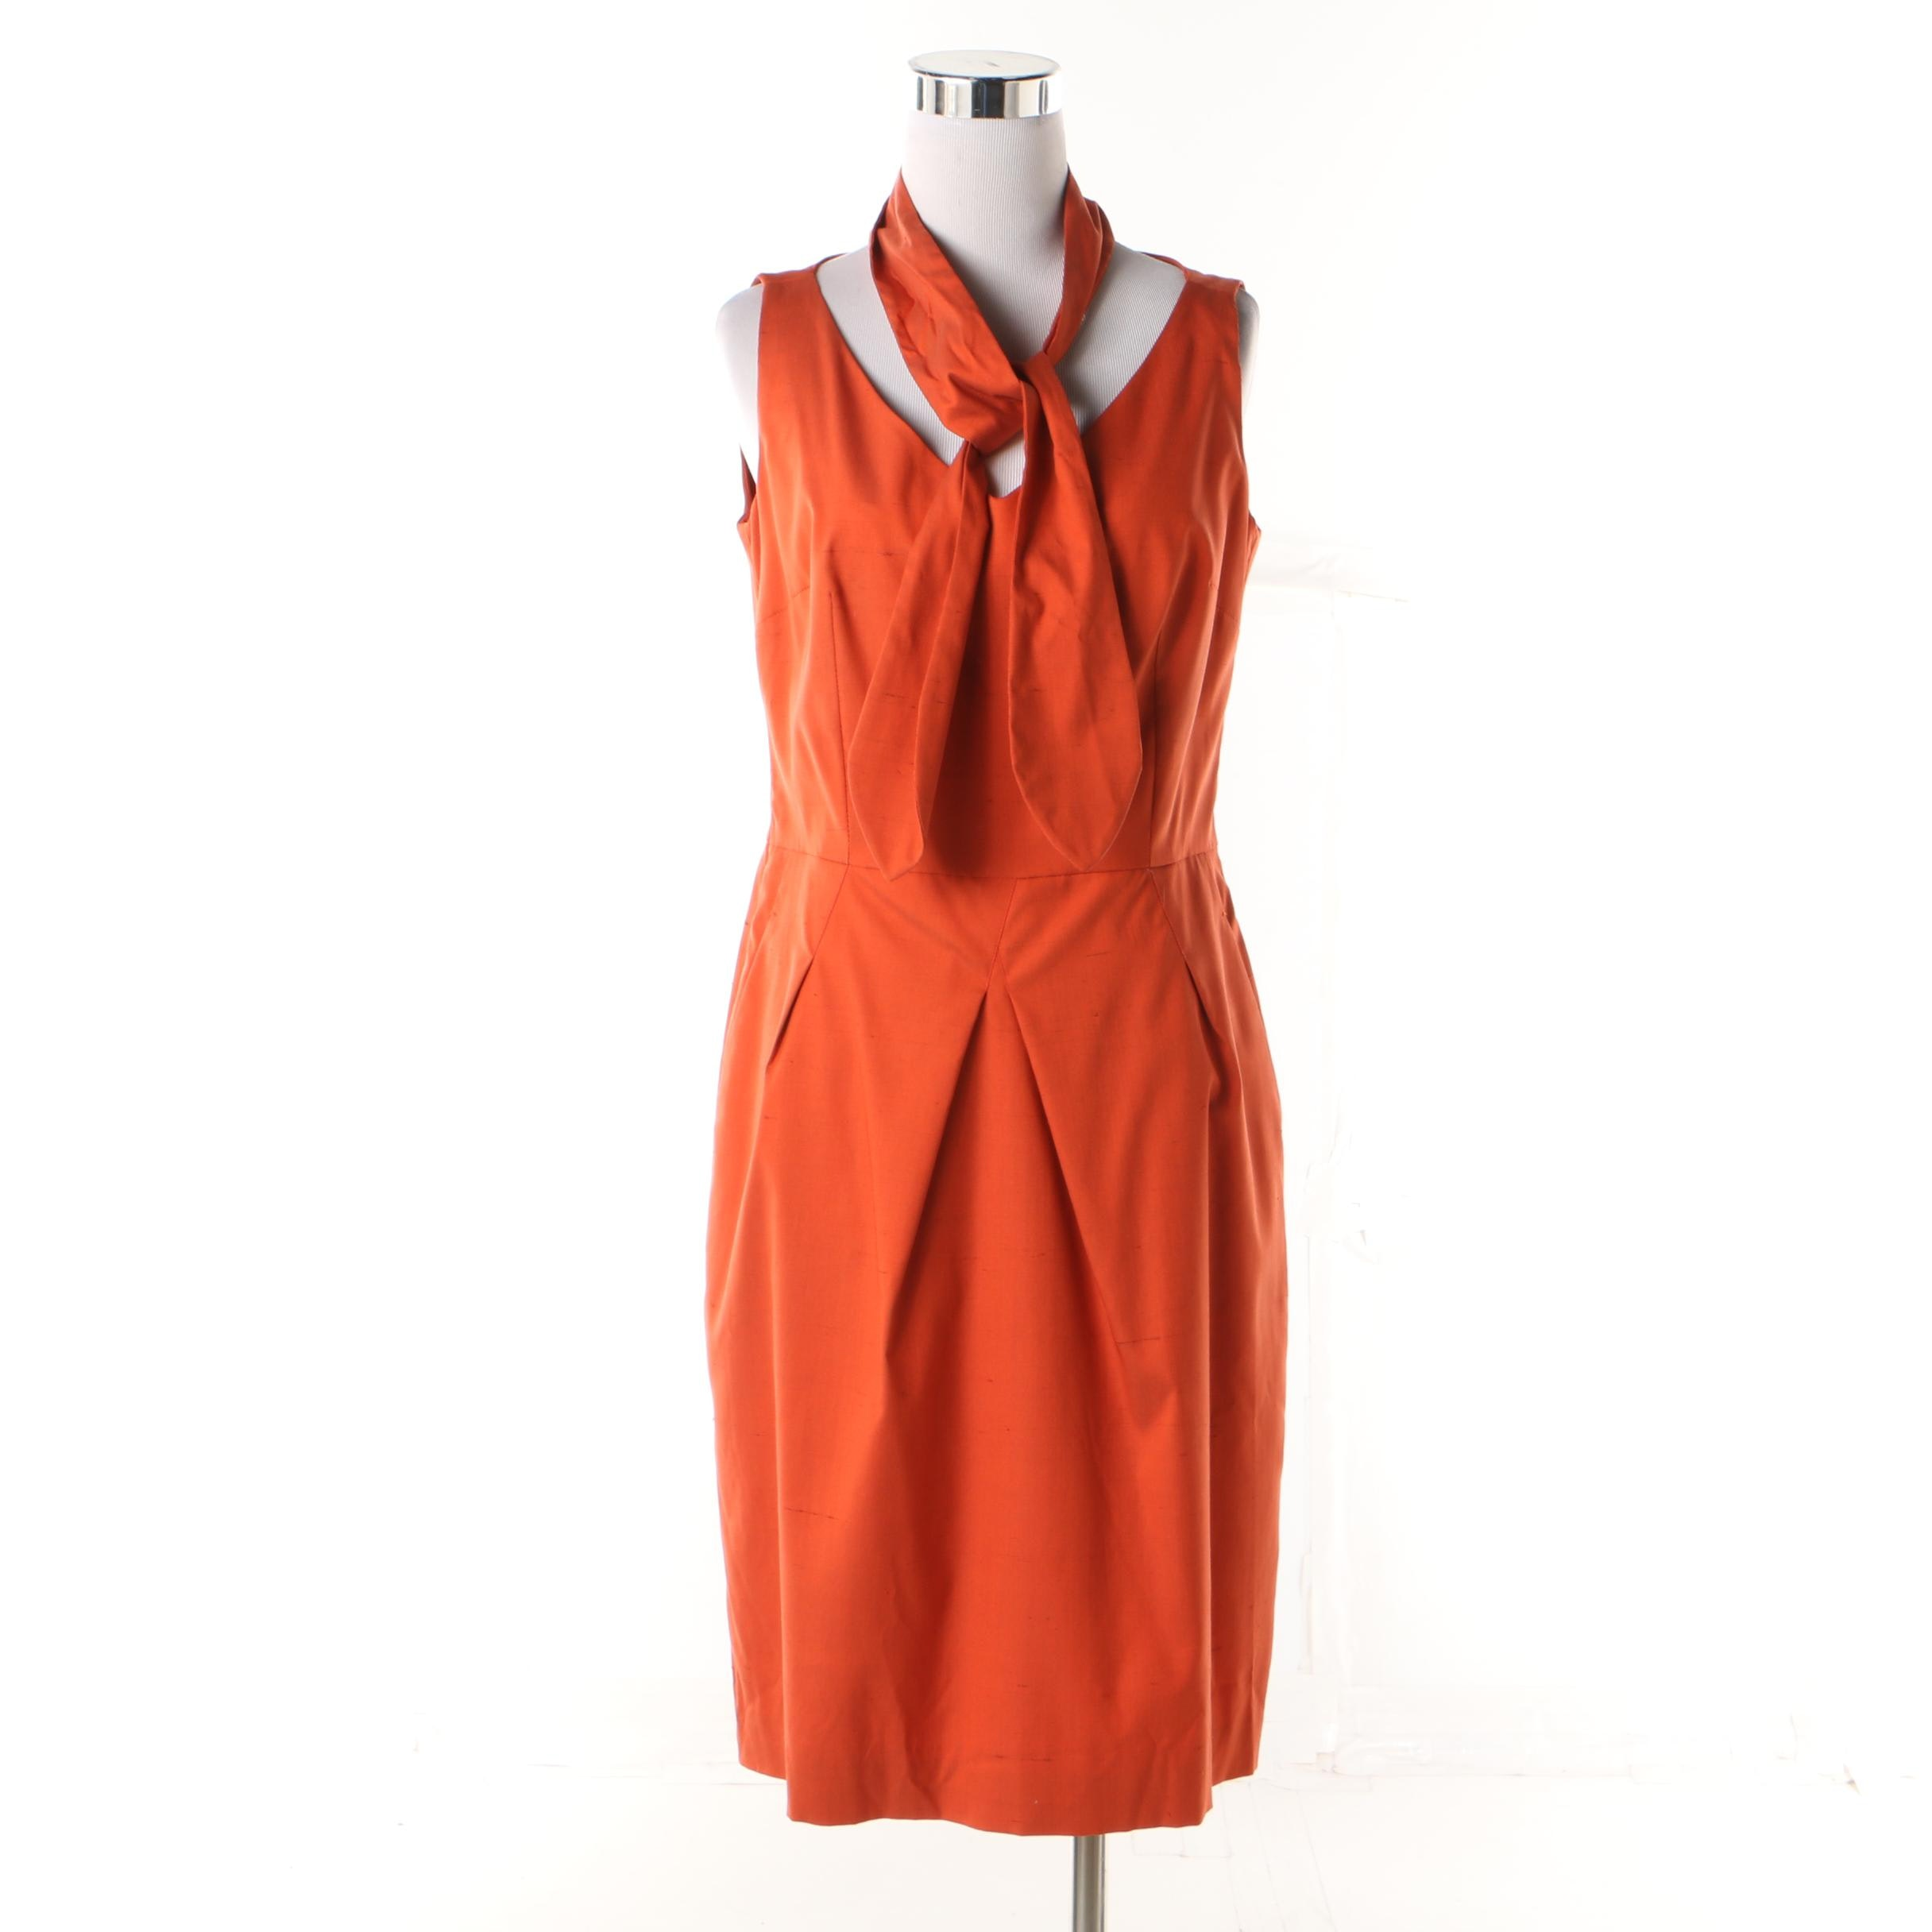 Piazza Sempione Burnt Orange Silk Blend Sleeveless Fitted Dress with Sash